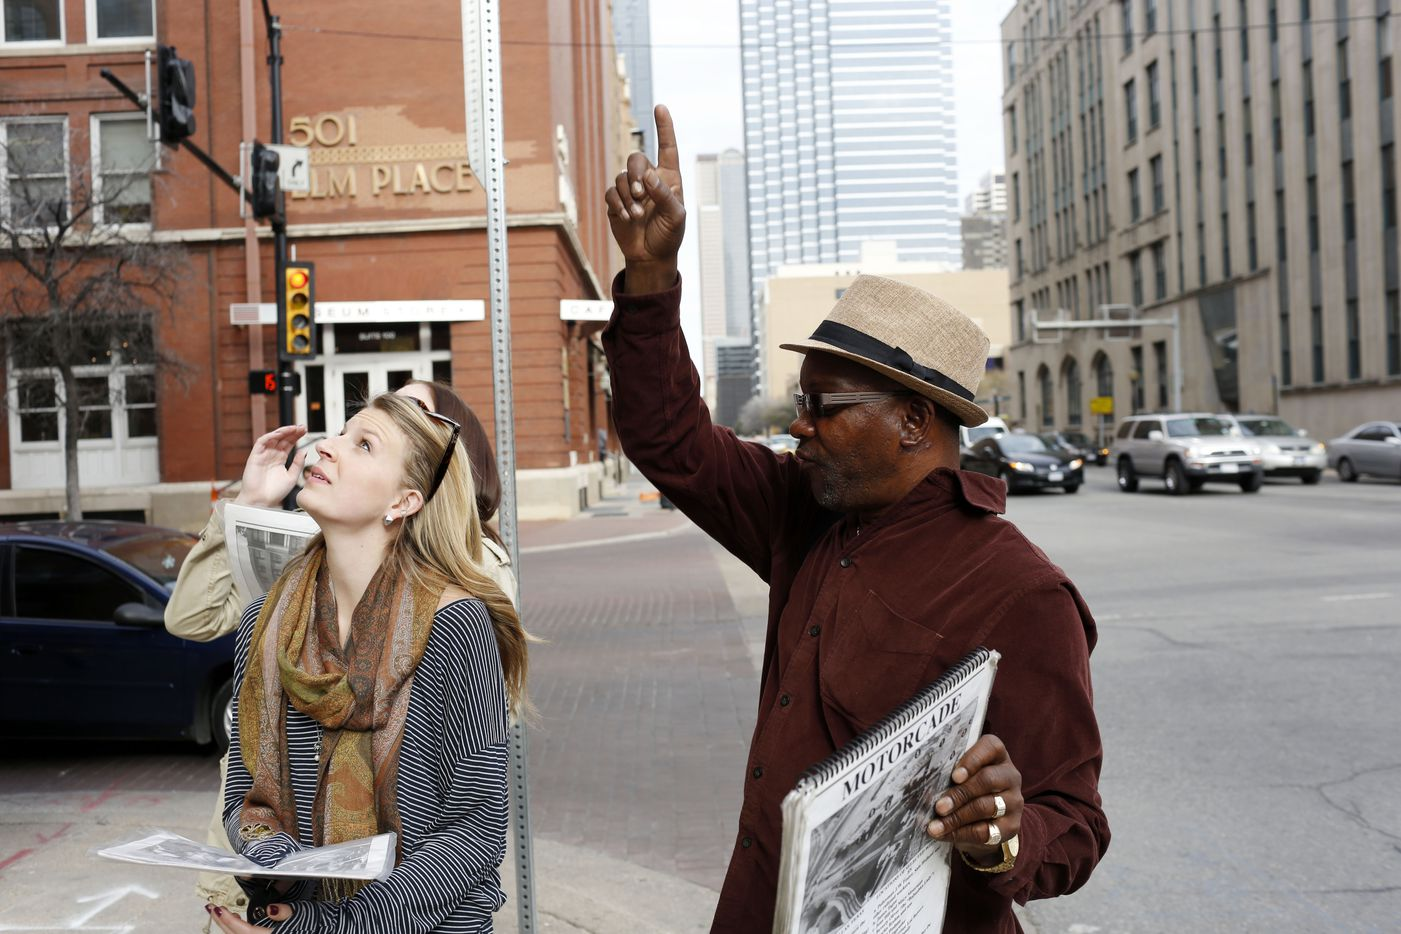 Lacey Gardner (left) and Chelsey Healy (behind Gardner) listen as Ron Washington points to the window on the sixth floor of the former Texas School Book Depository building as he tells them about parts of his JFK conspiracy booklet he is trying to sell in Dealey Plaza in Downtown Dallas on March 6, 2013.